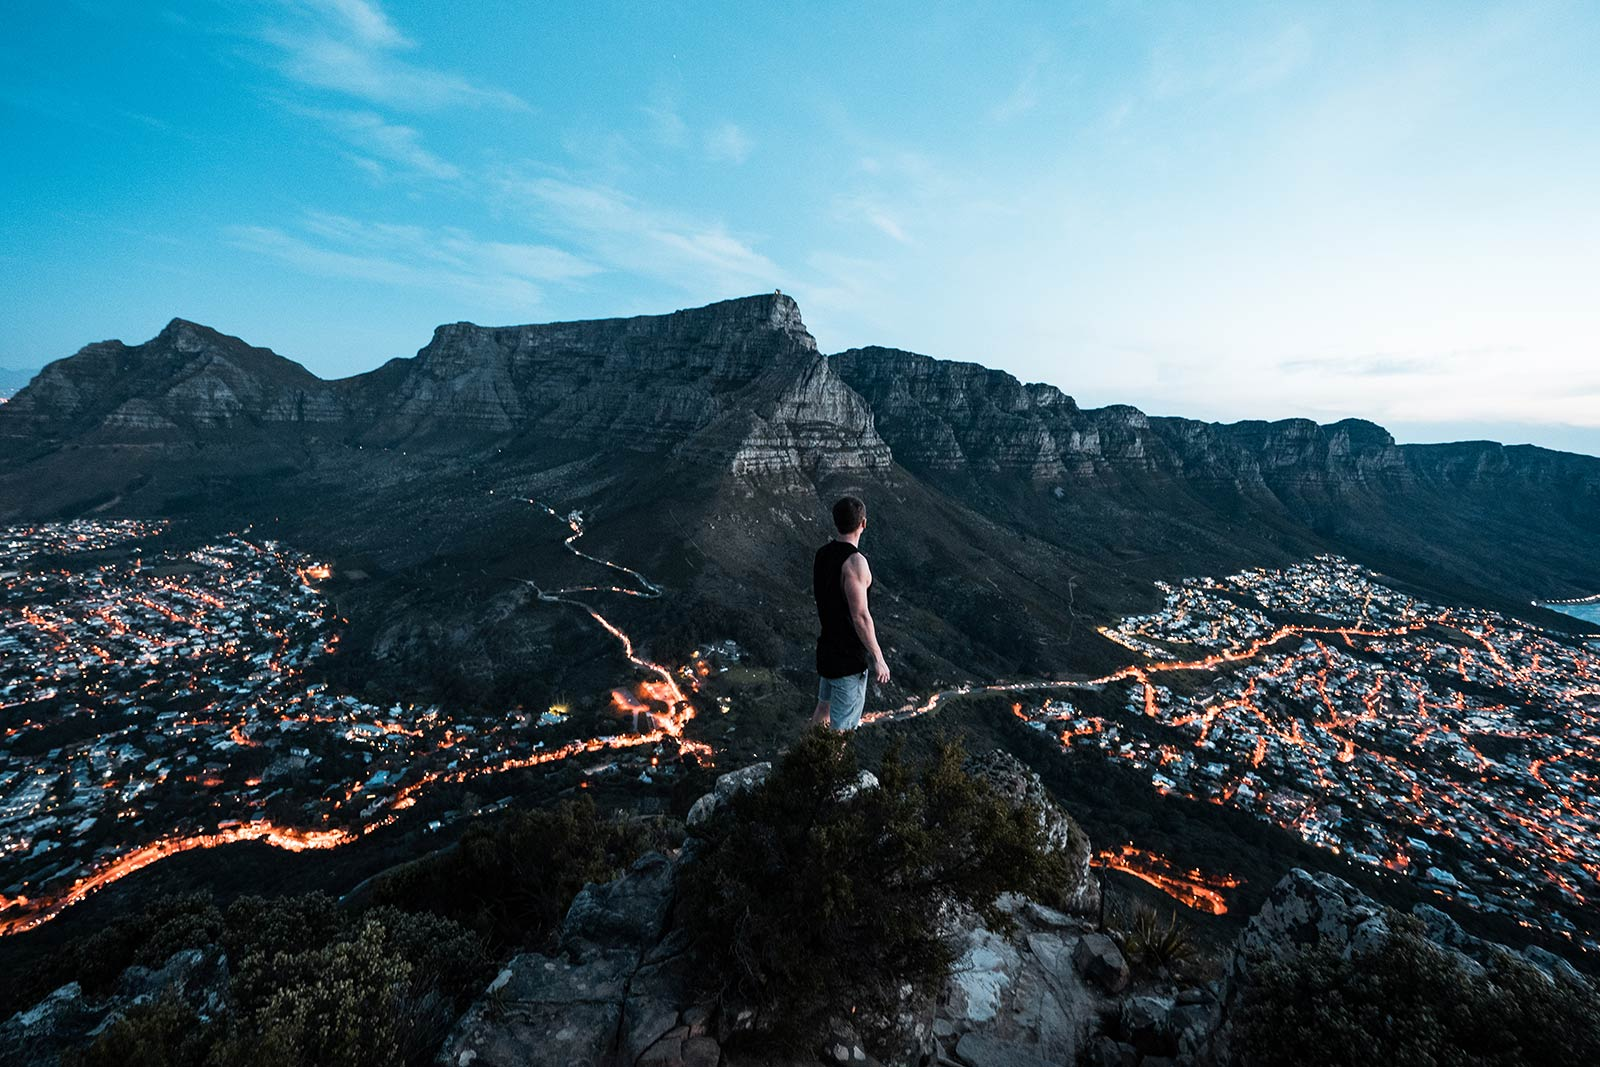 David Simpson on top of Lion's Head in Cape Town, South Africa. Running up Lion's head